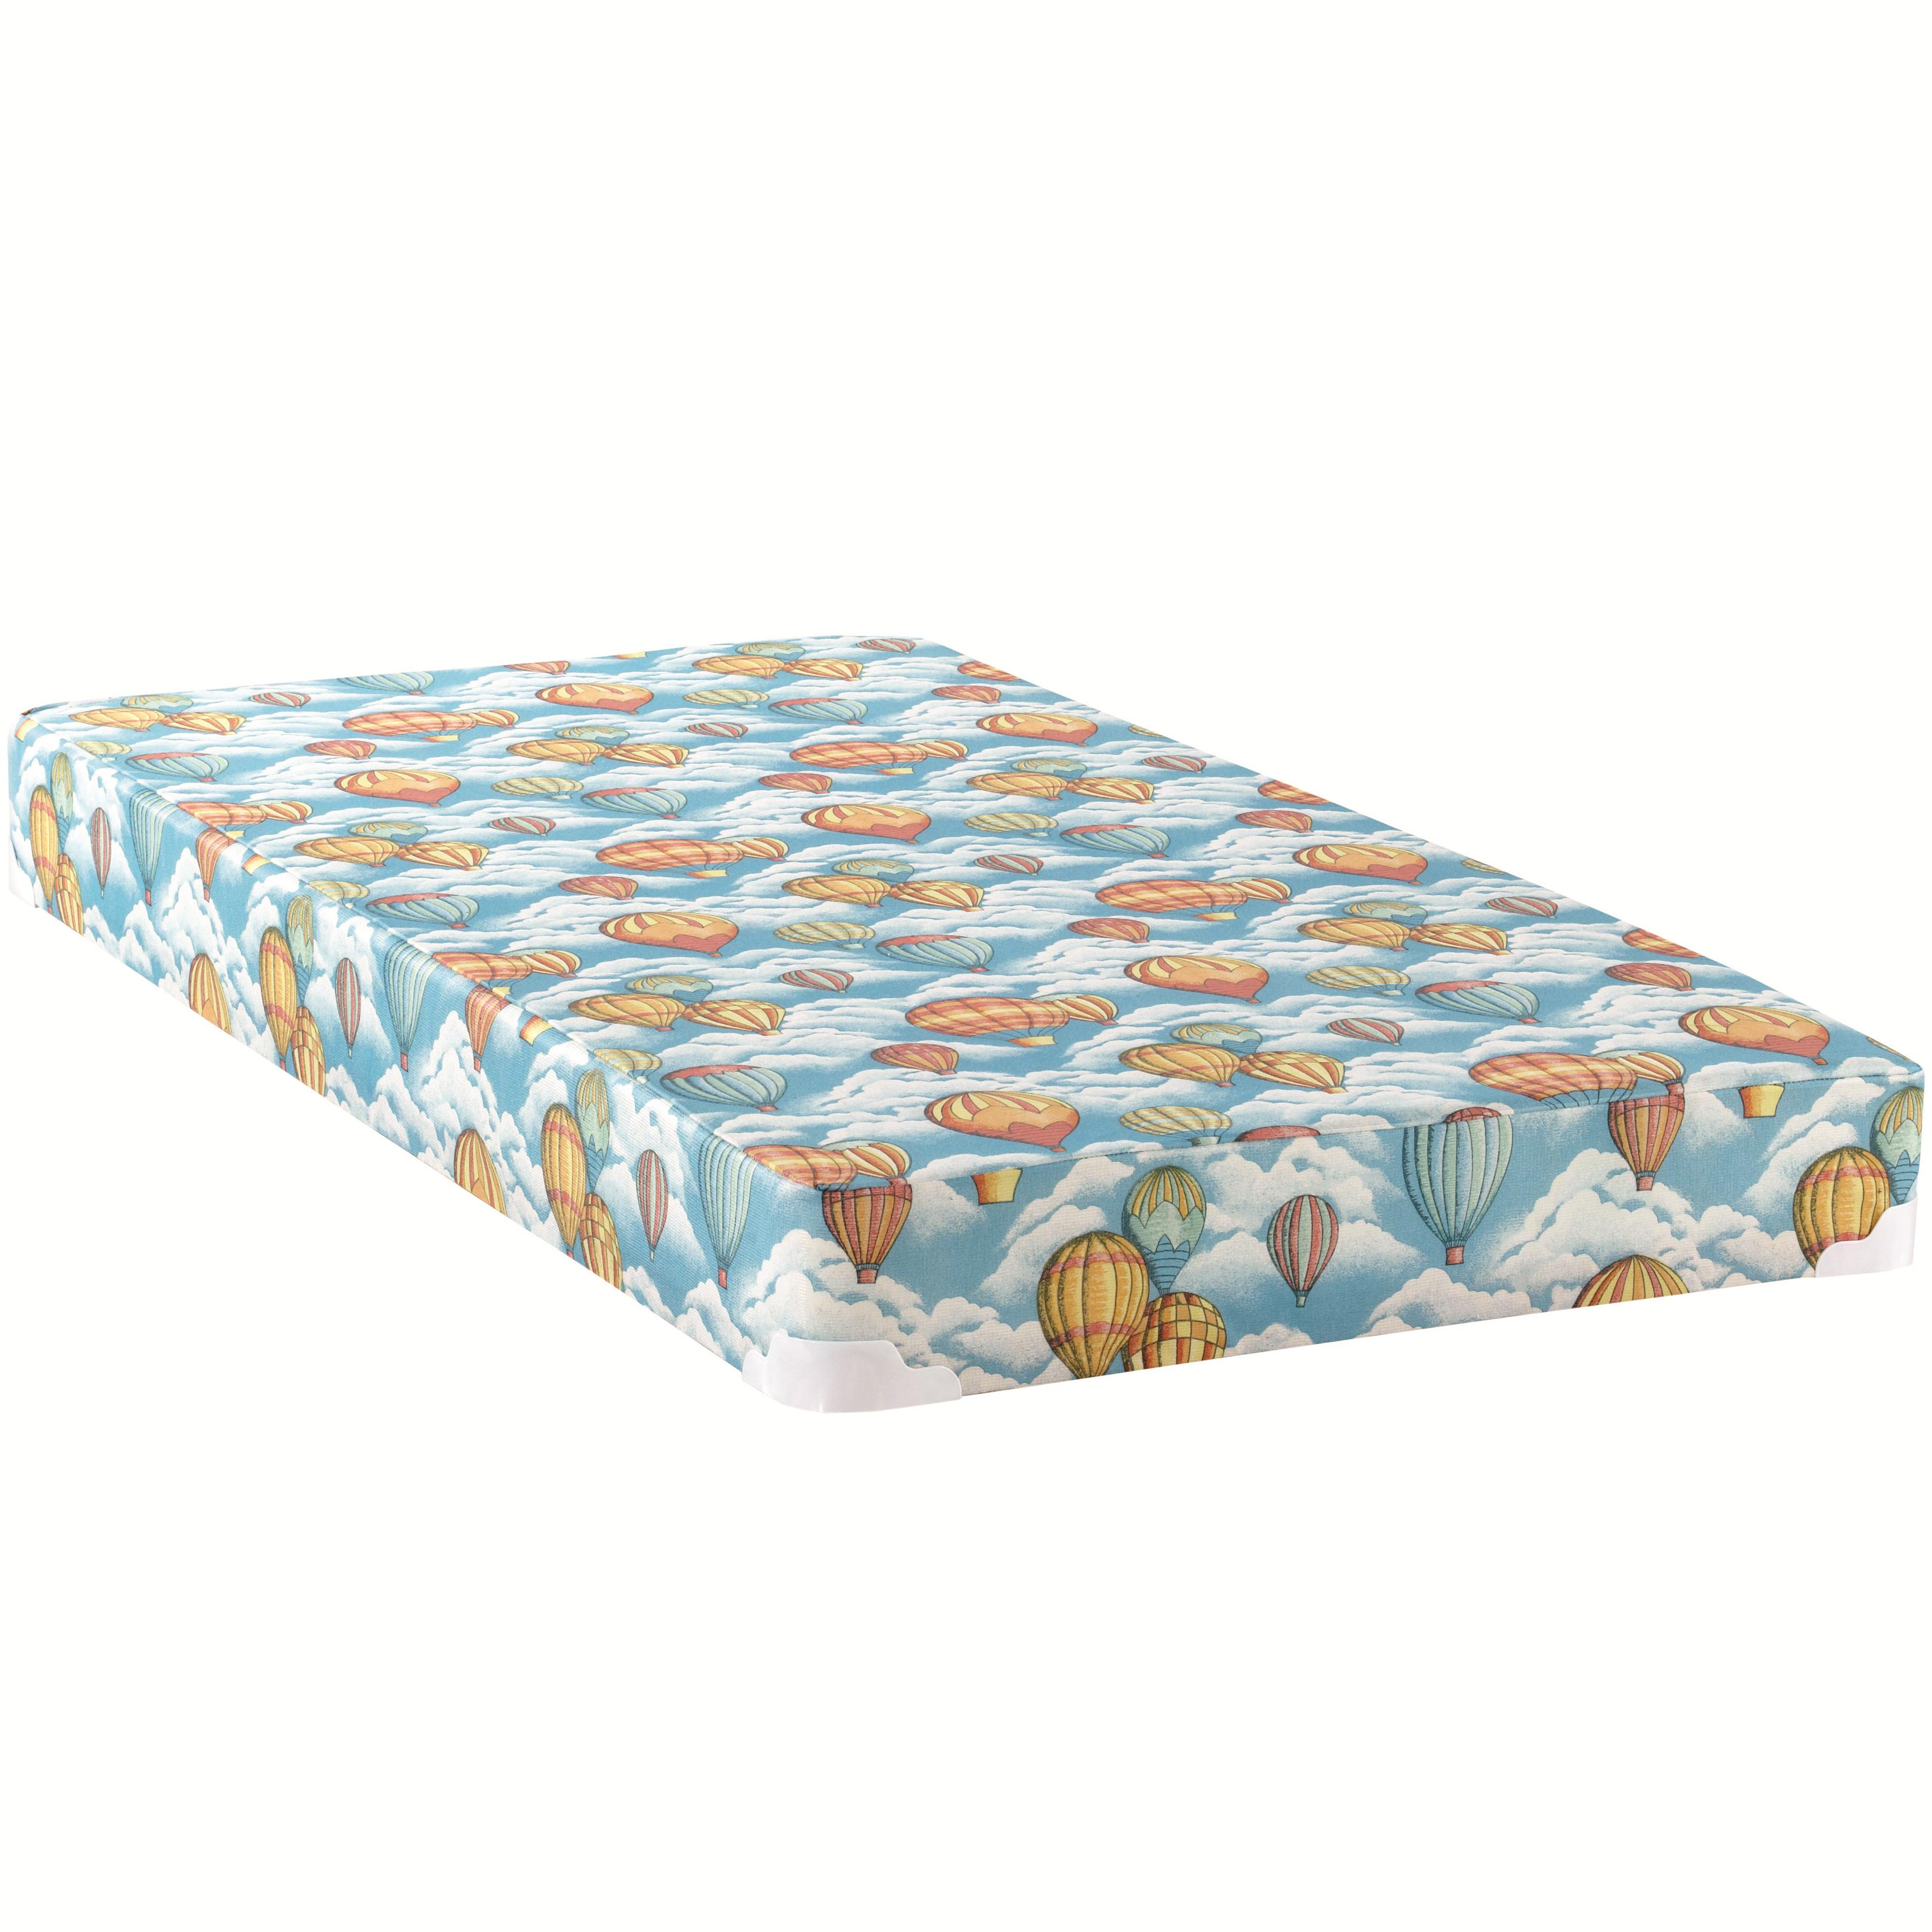 Coaster Balloon Mattress Twin Mattress with Bunkie - Item Number: 350022T